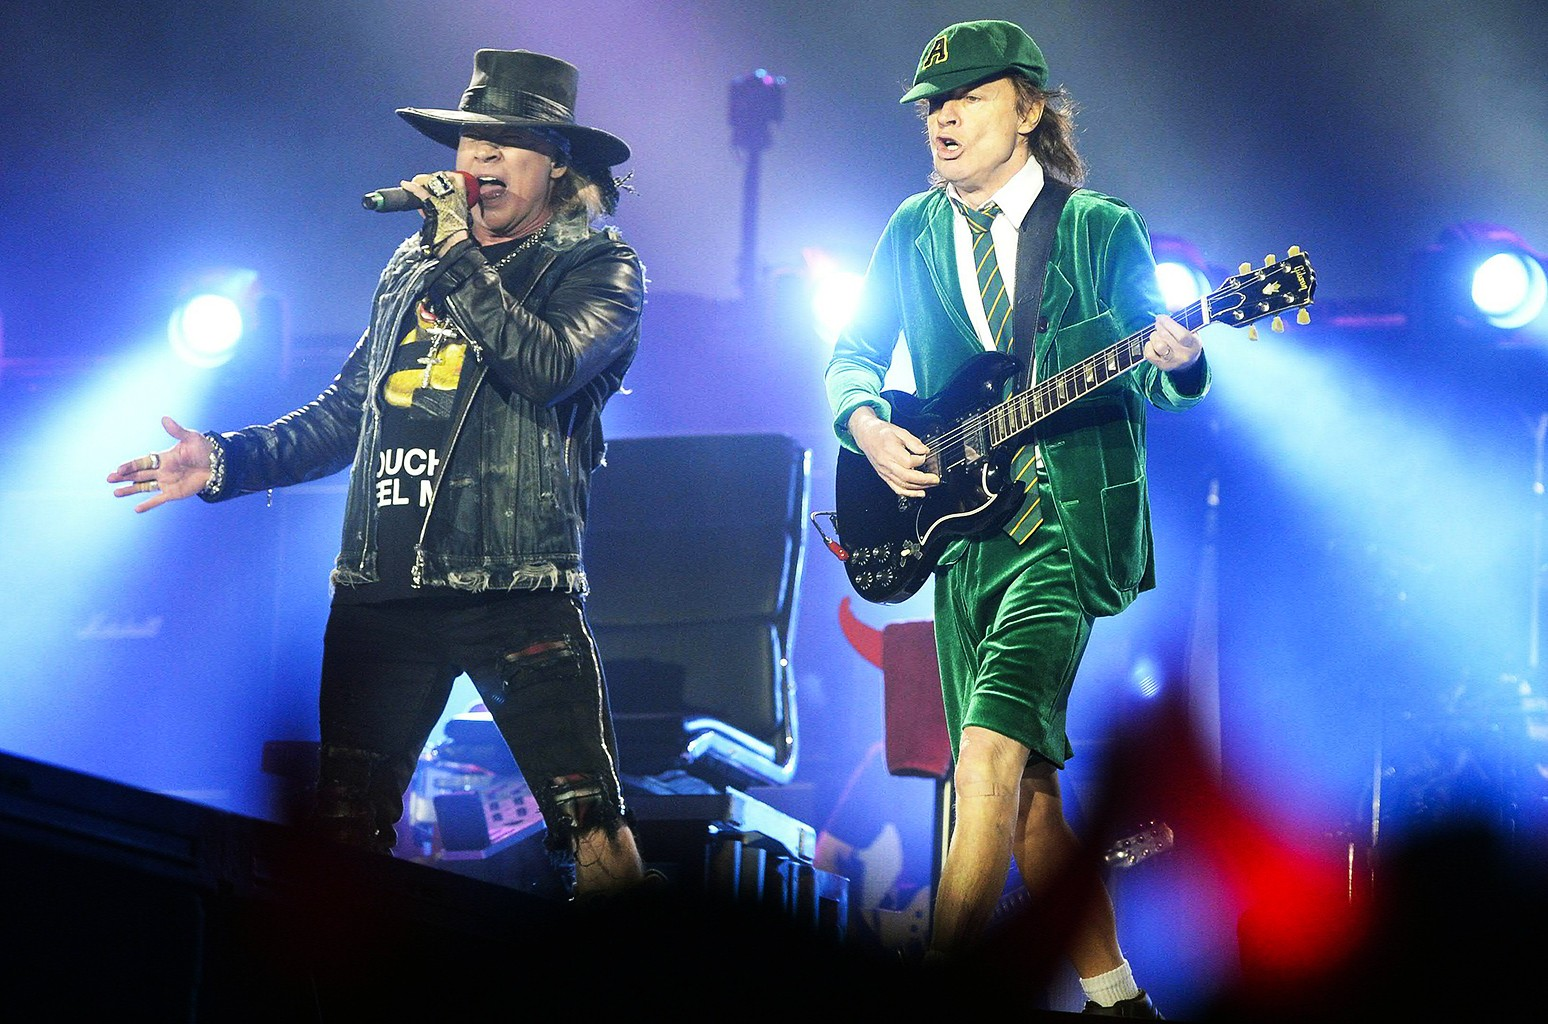 Axl Rose and AC/DC perform in 2016